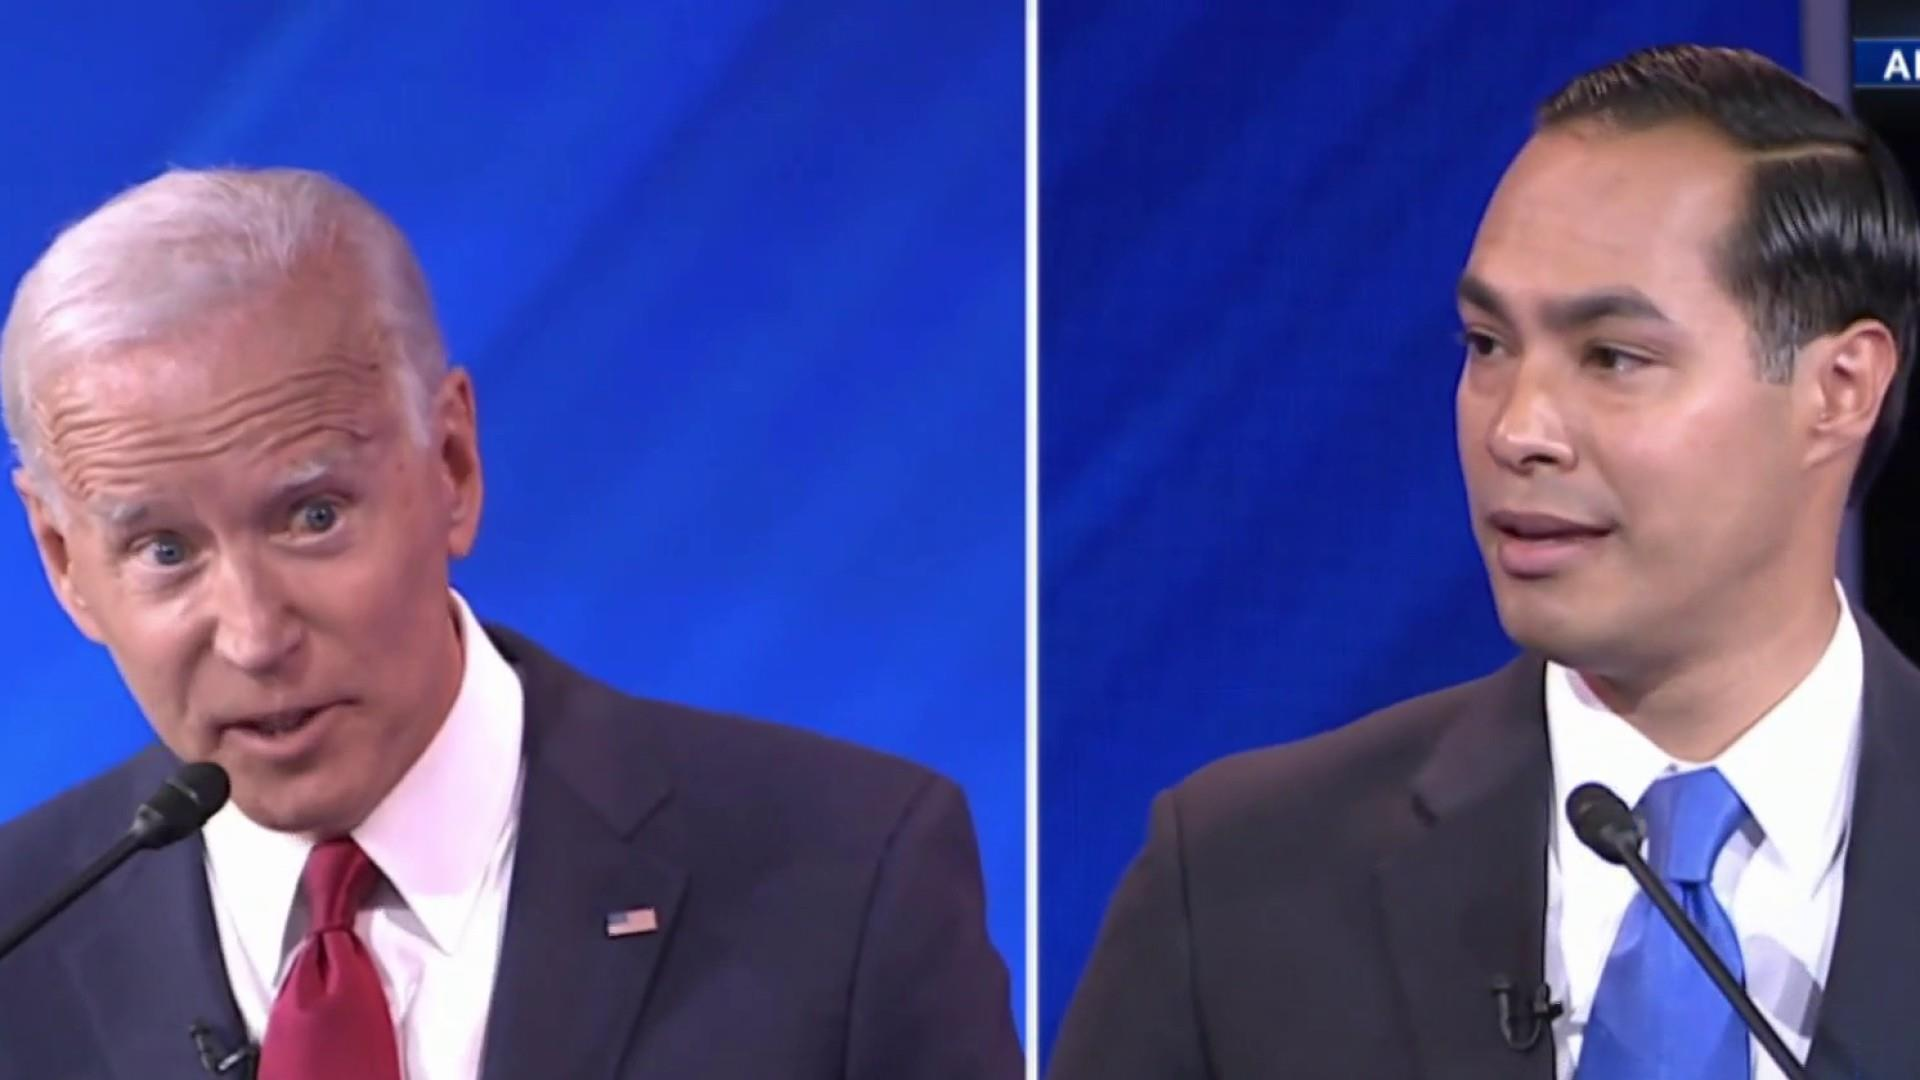 Julián Castro accused Joe Biden of 'forgetting.' Did he go too far?